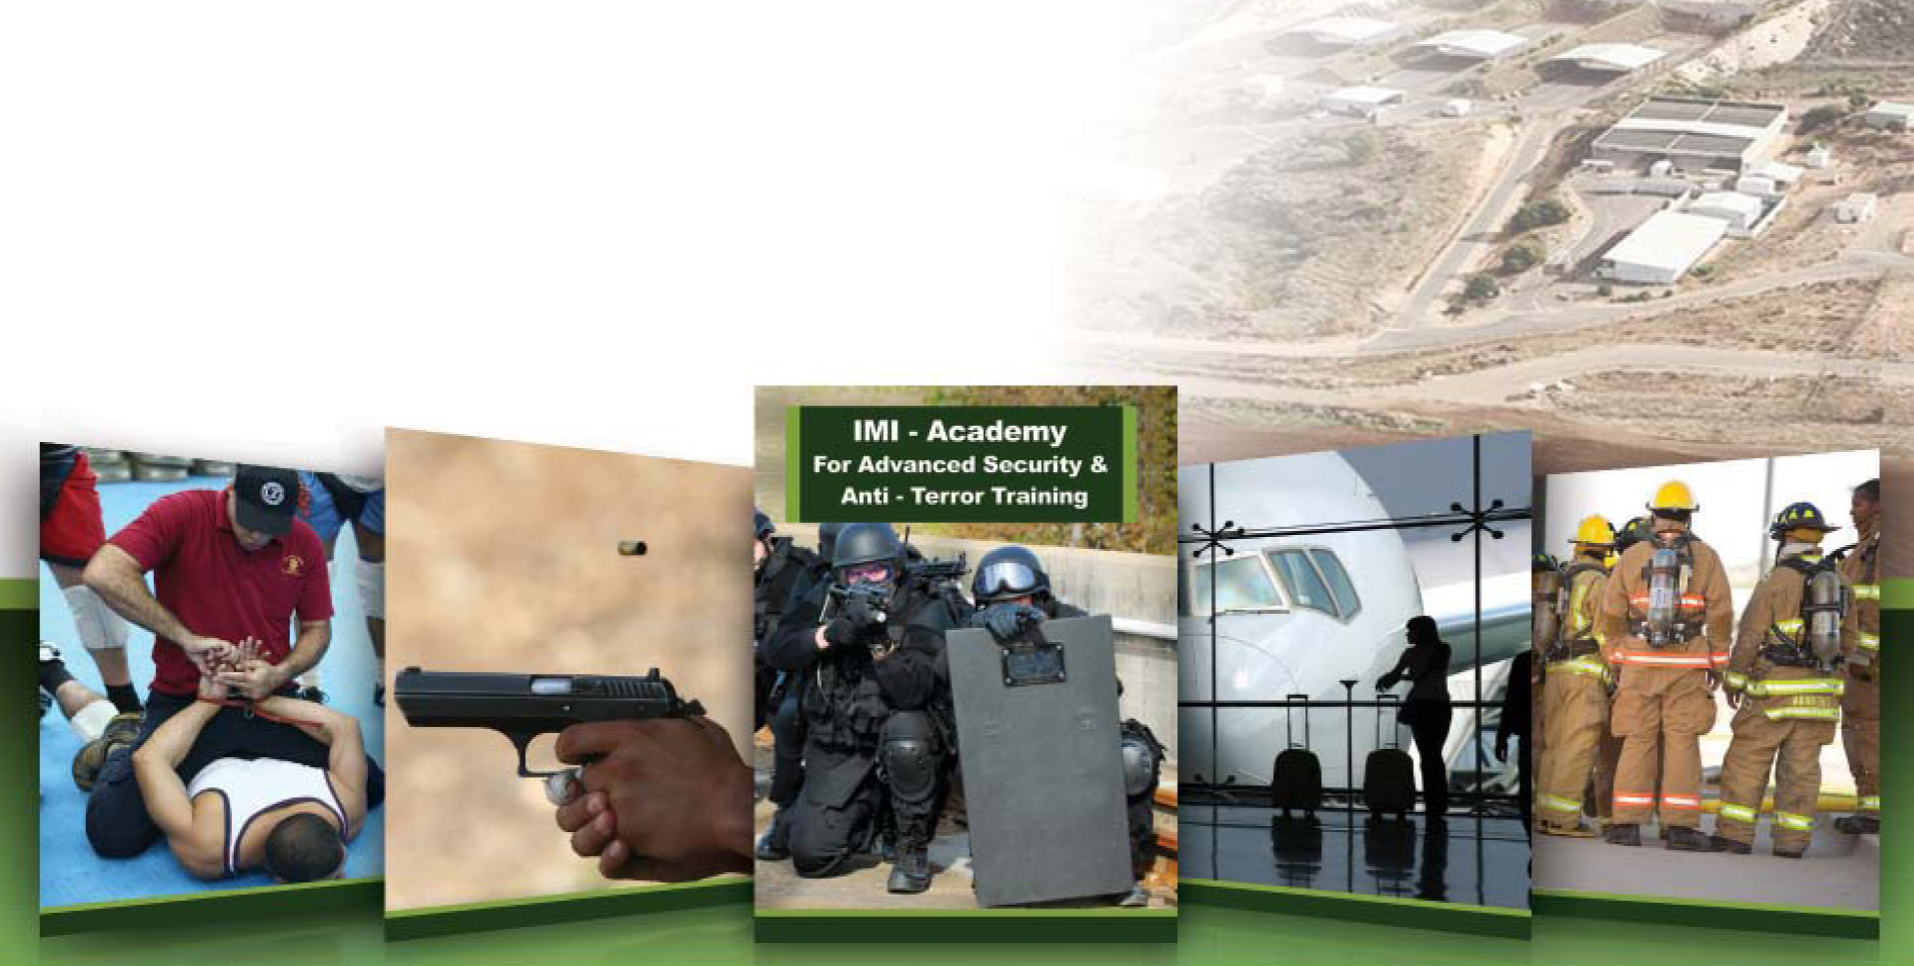 IMI ACADEMY FOR ADVANCED SECURITY & ANTI-TERROR TRAINING